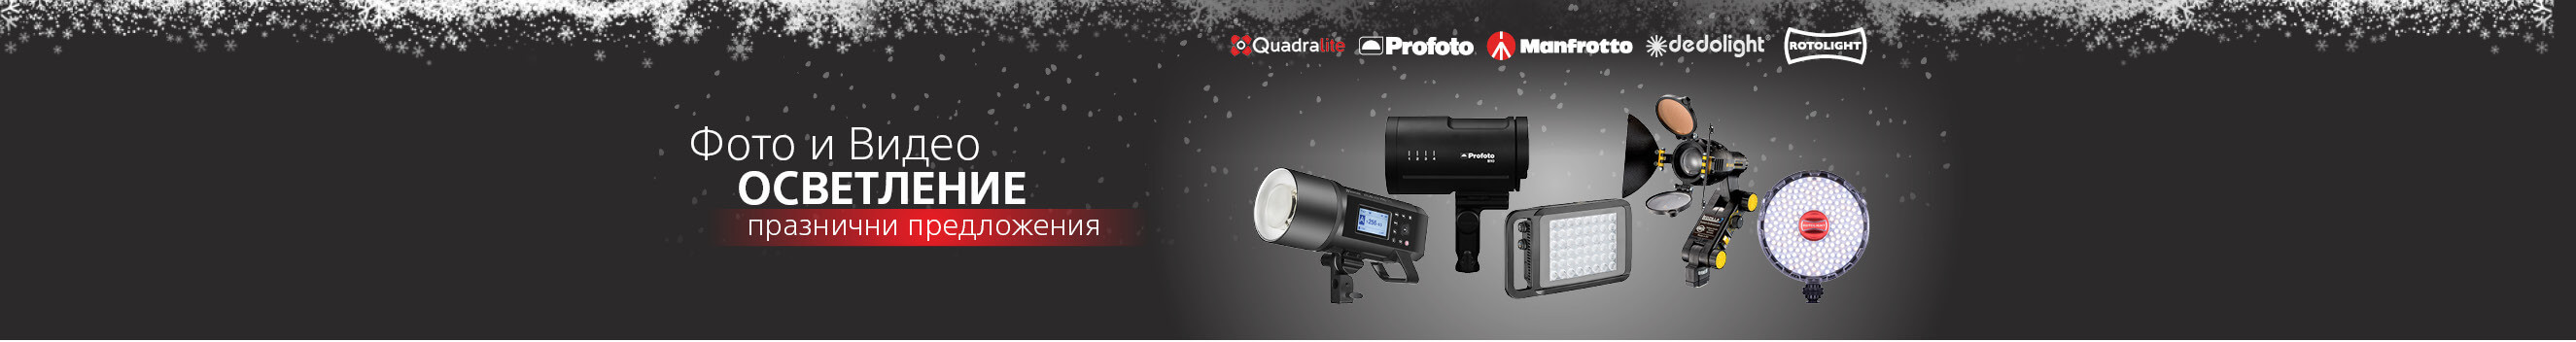 Promotional offers for video and photo lighting - compact flashes, monoblocks, LED panels, studio lighting kits, softboxes, umbrellas, apertures and accessories.